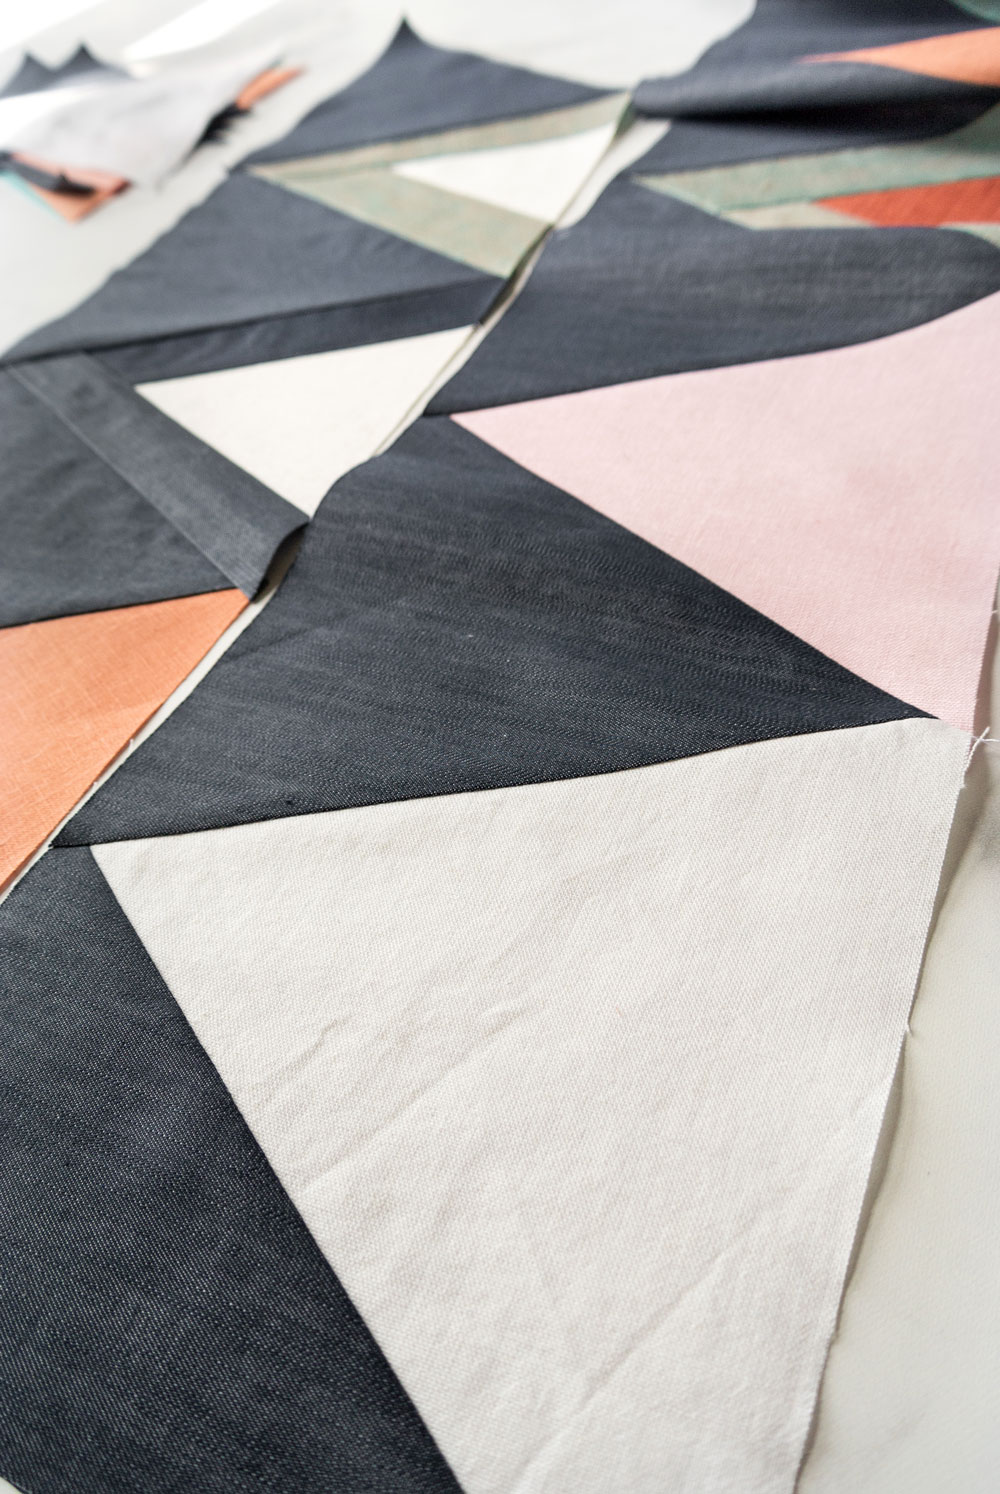 Join the Mod Mountains quilt pattern sew along! Learn new quilting skills and win weekly prizes as an online sewing community. Together we cover sewing with linen and different kinds of fabric, cutting with templates and sewing triangles.